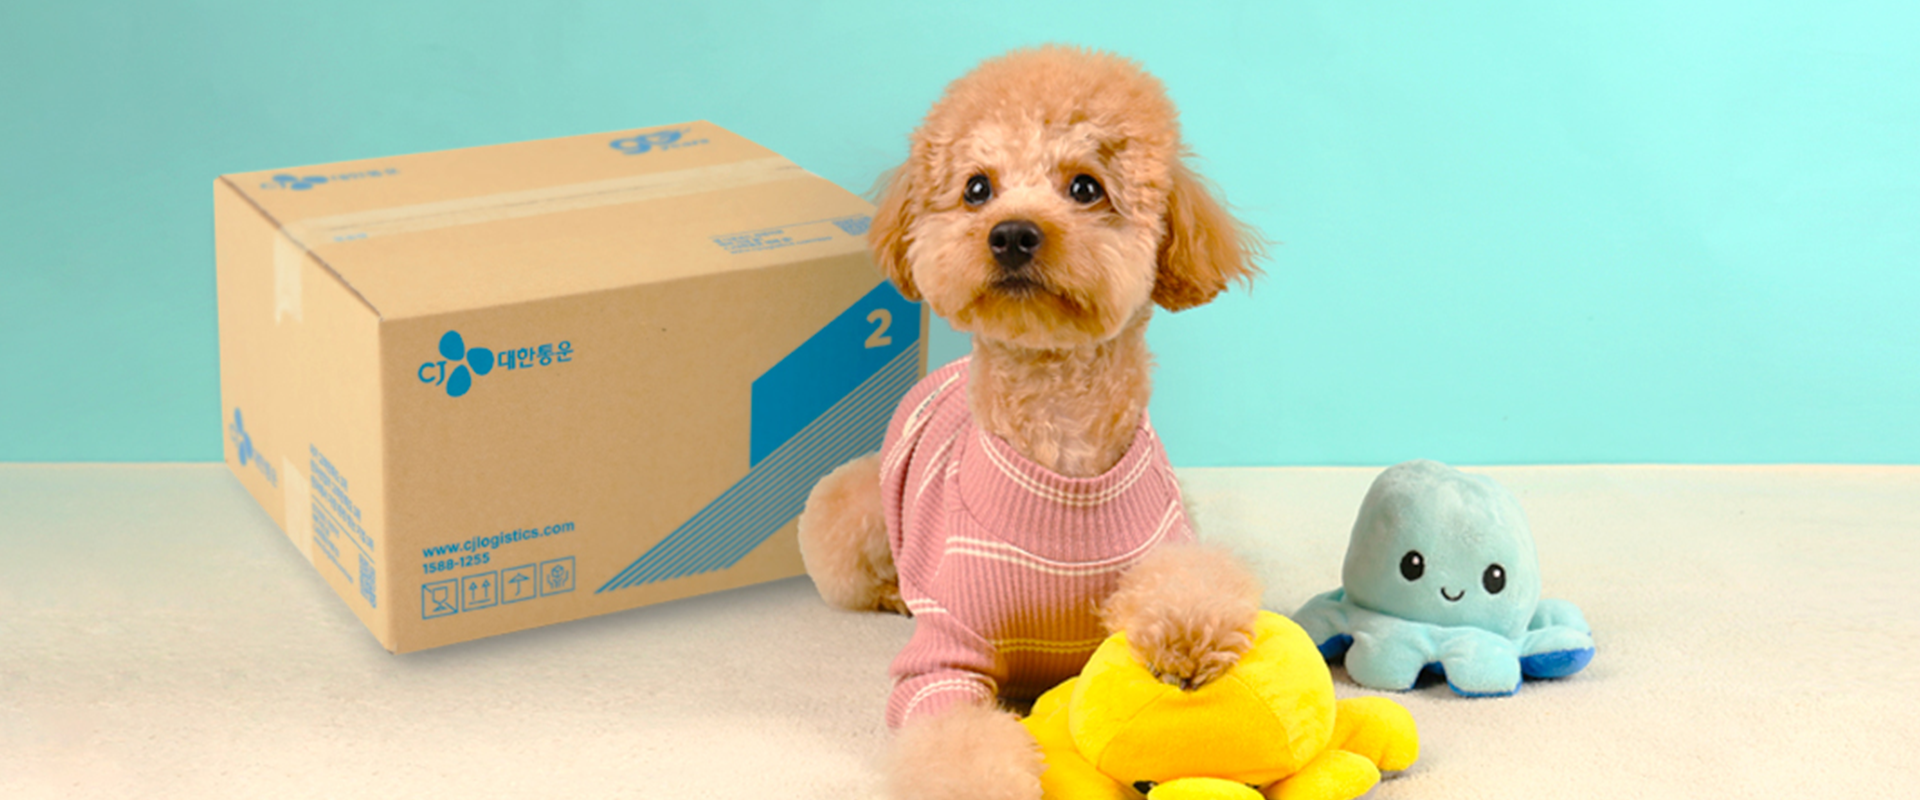 Petconomy, which has soared with the stay-at-home trend, now takes wing with fulfillment services